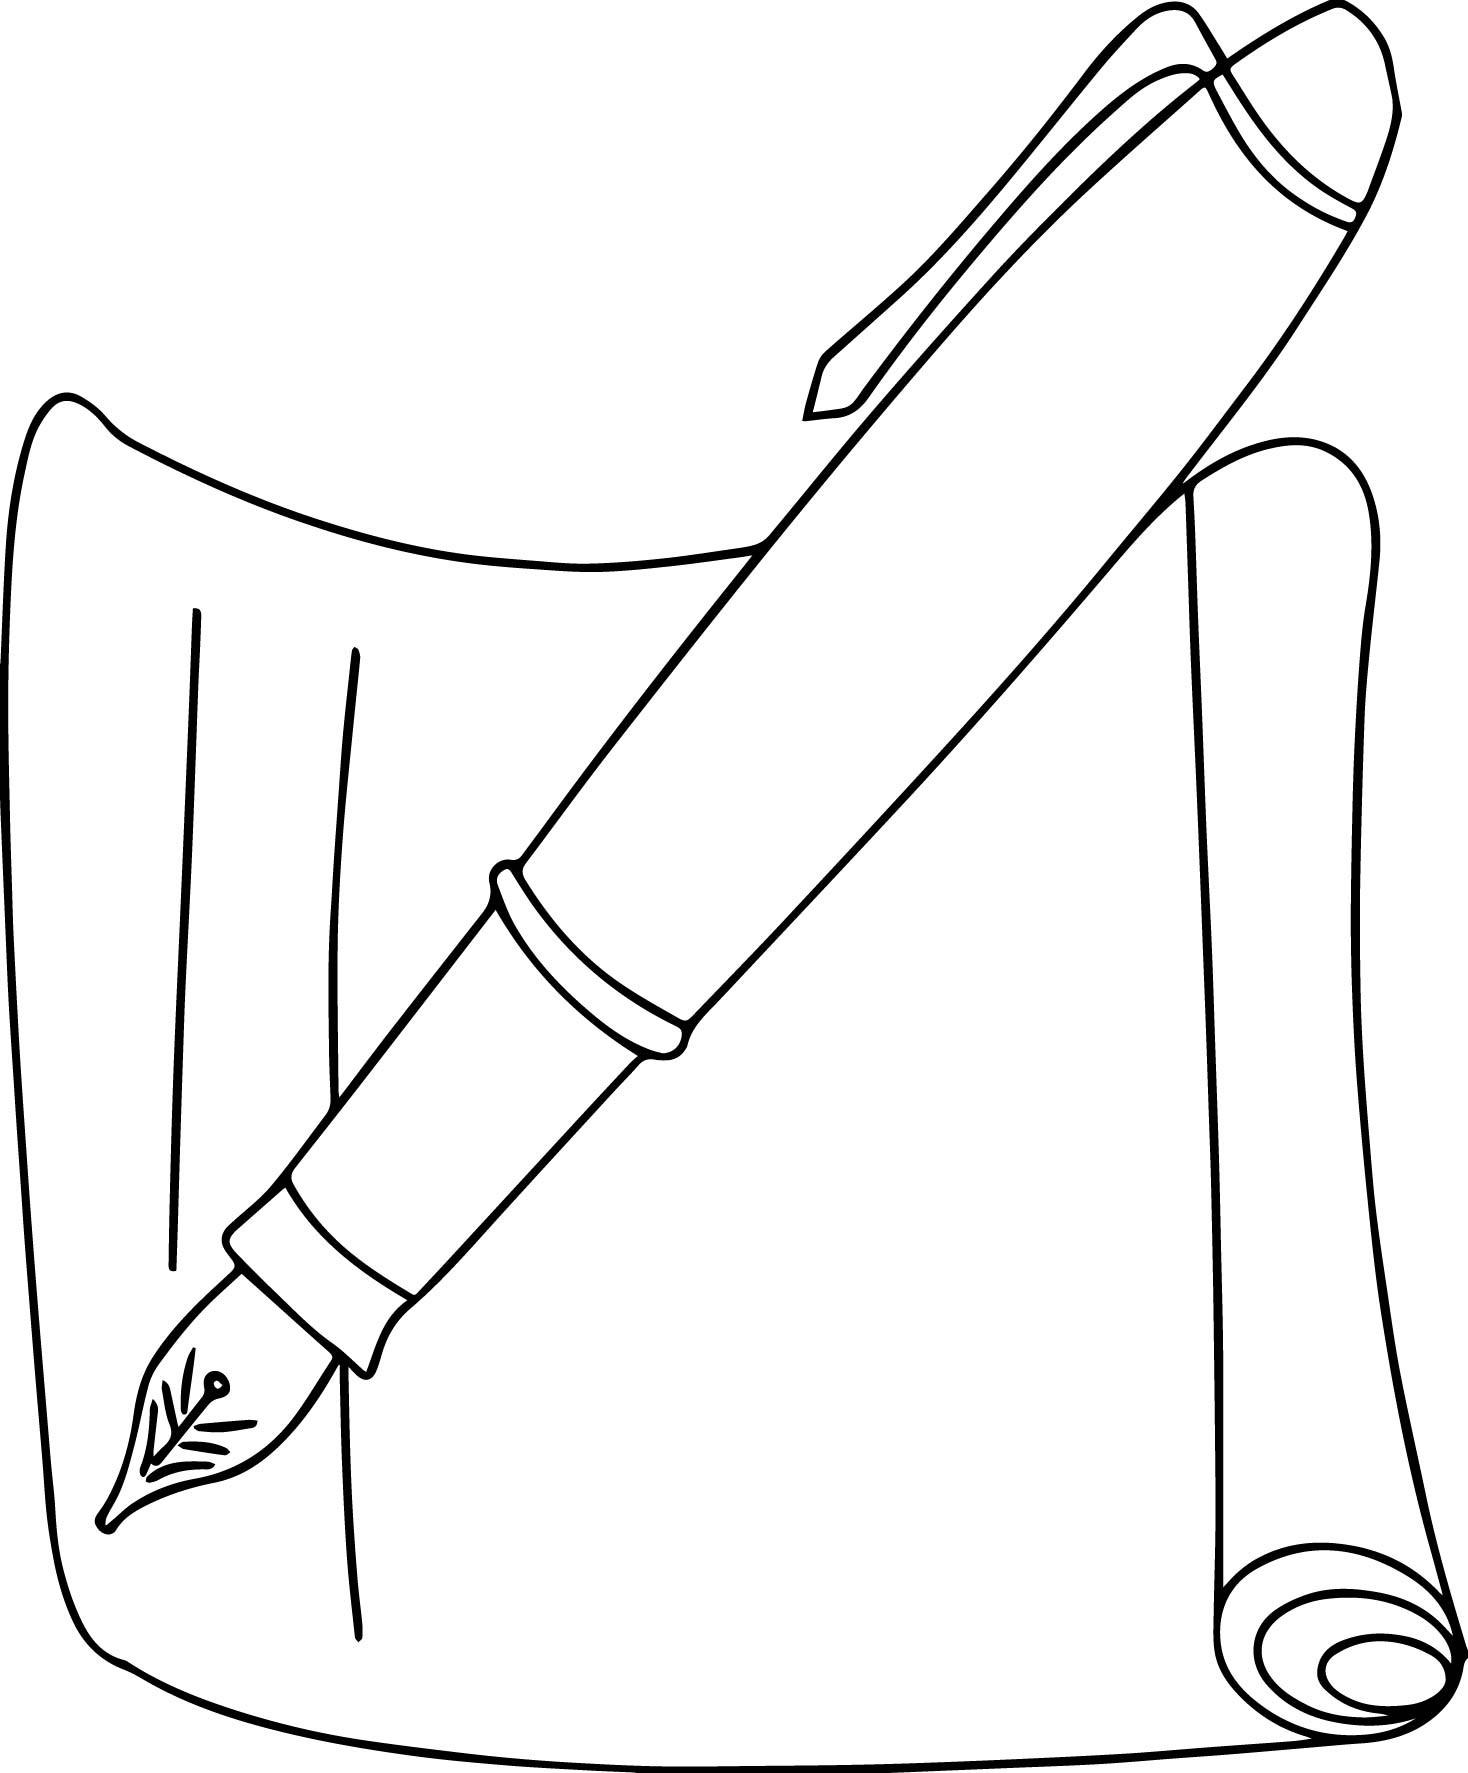 School Pen Coloring Page Awesome top 89 Pen Coloring Pages Free Download Of Pen Coloring Pages 7 Coloring Pages for Children Gallery